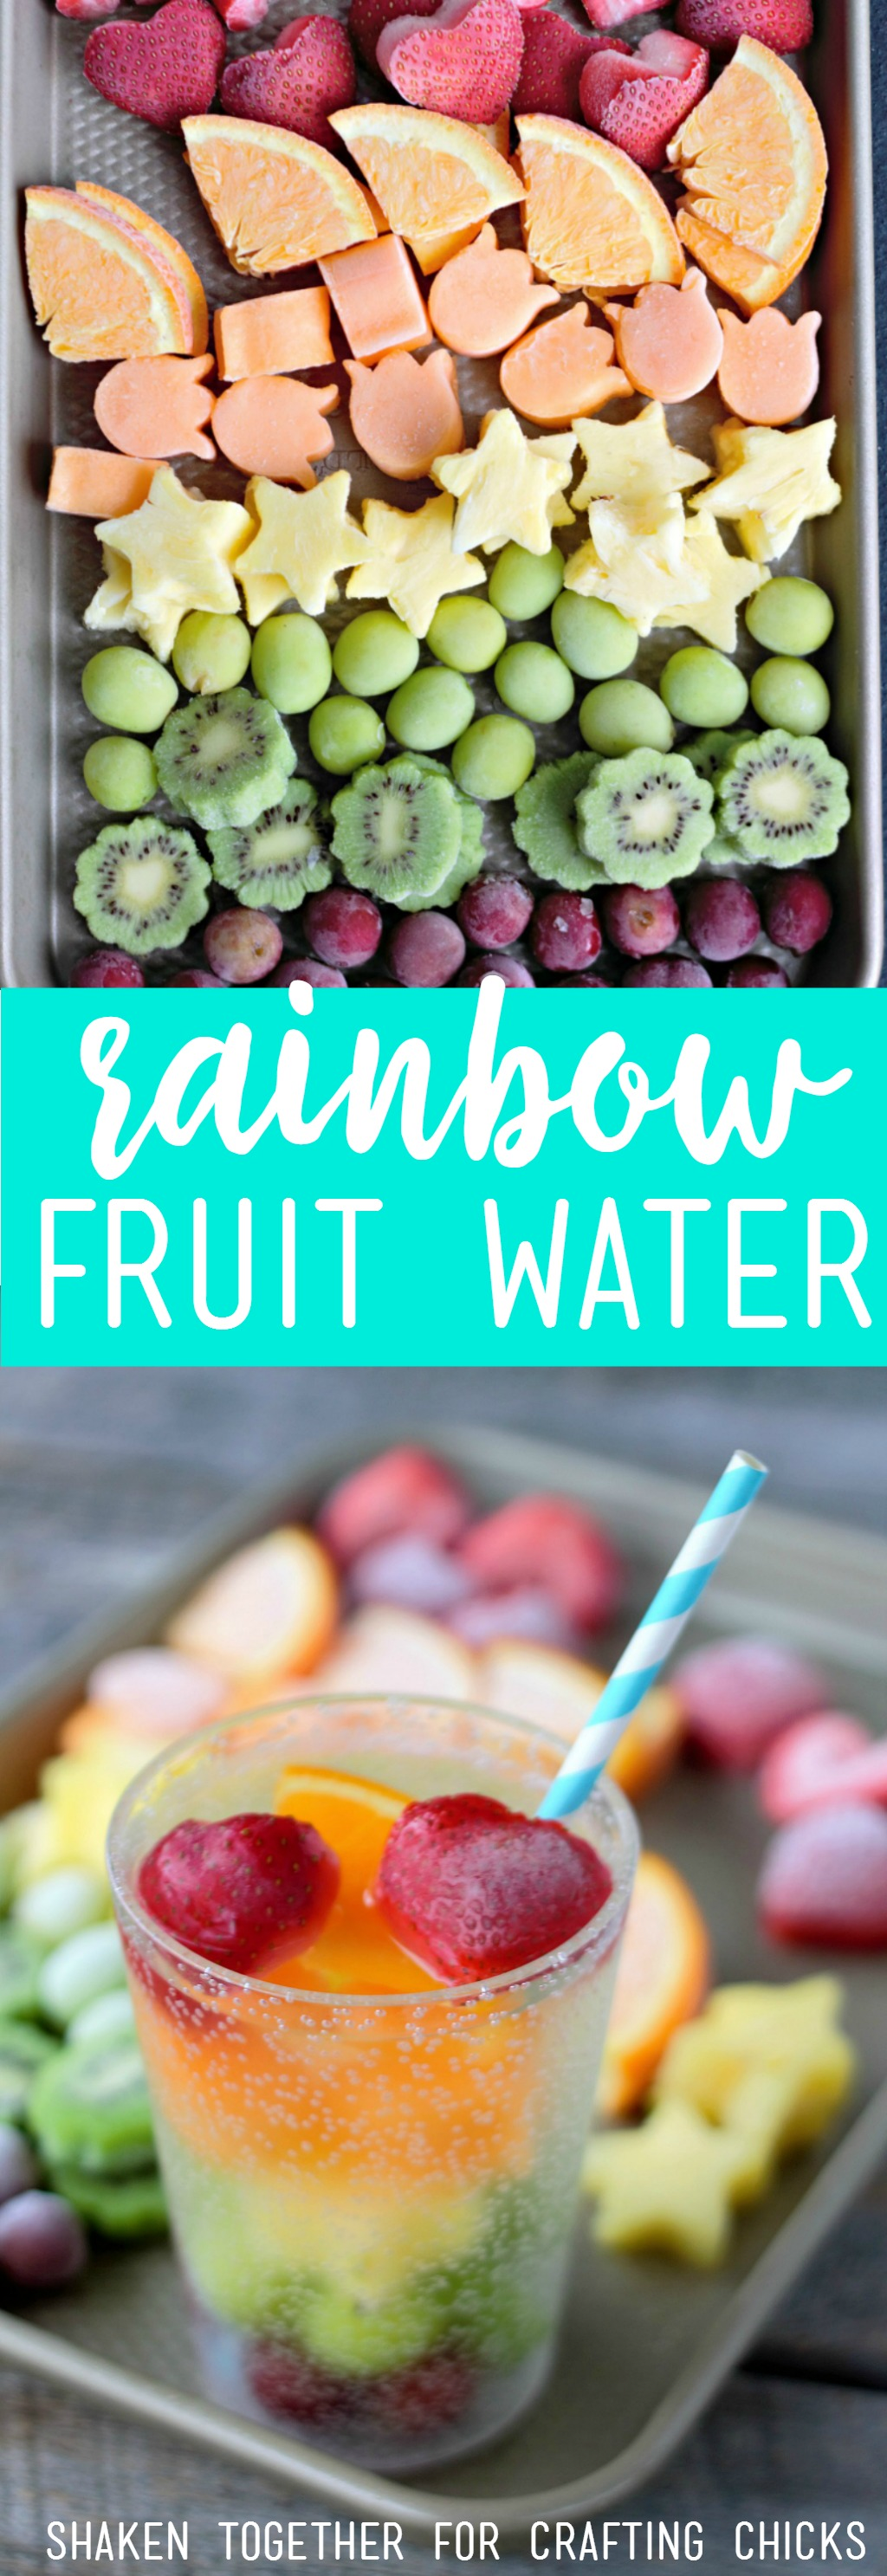 Refreshing Rainbow Fruit Water with Frozen Fruit is a healthy and delicious way to stay hydrated all Summer long! As the fruit thaws, it flavors the water and provides a snack to nibble on!